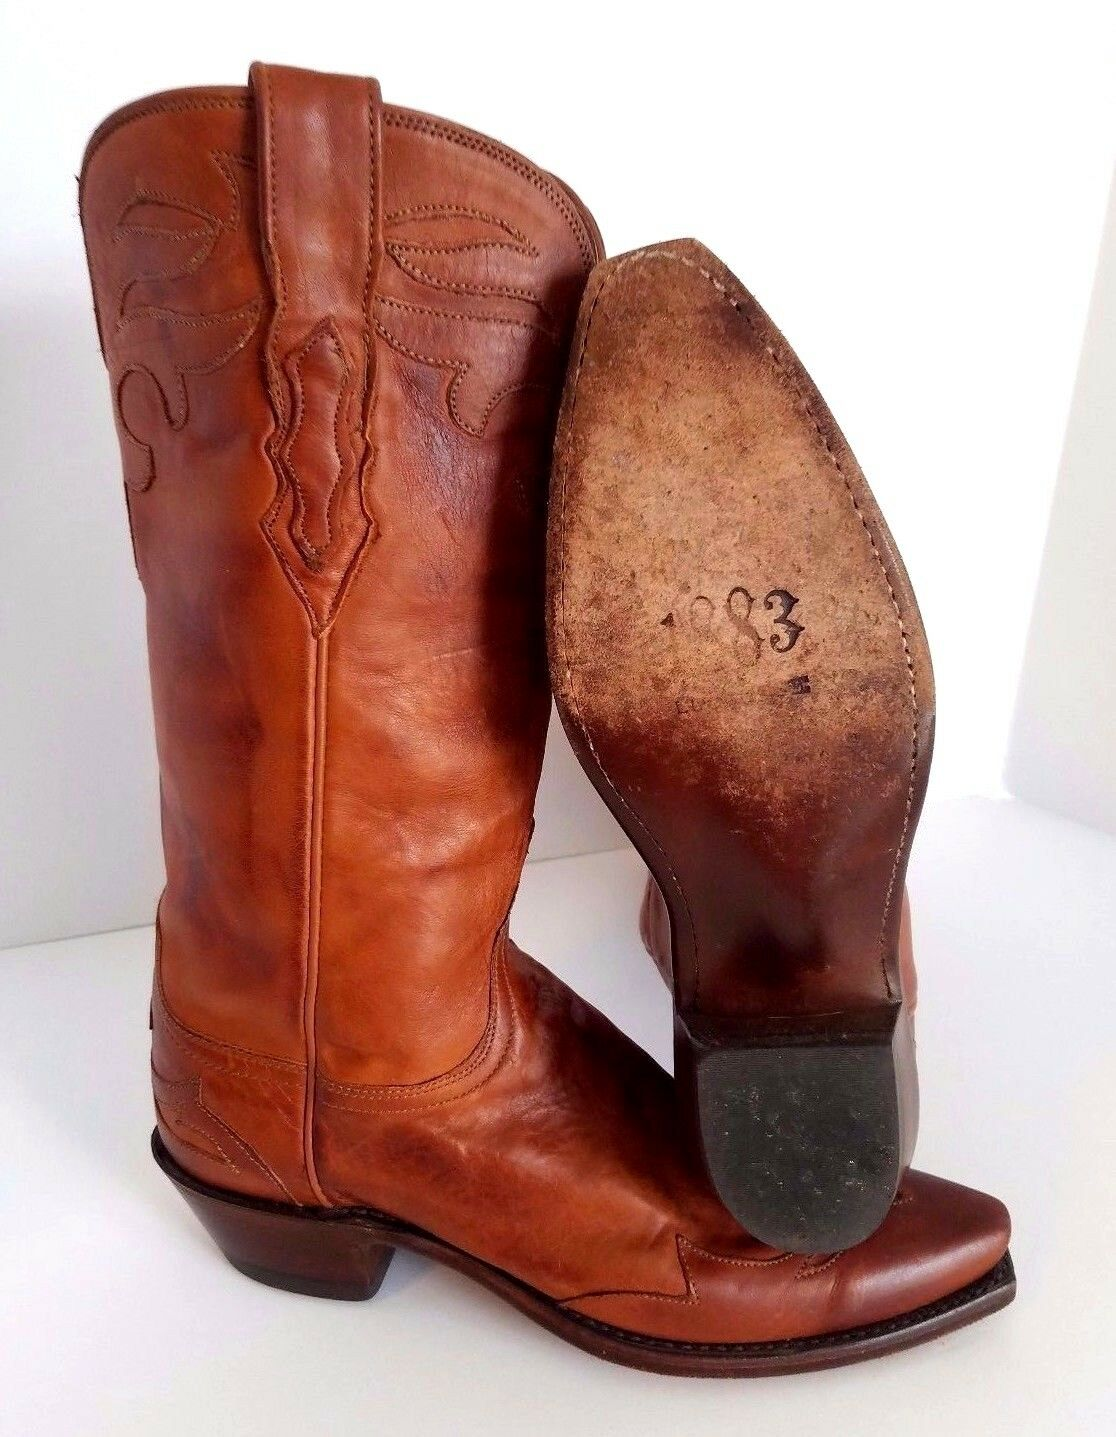 Lucchese Lucchese Lucchese 1883 Western Boots Women's Size 7 7d2ce2